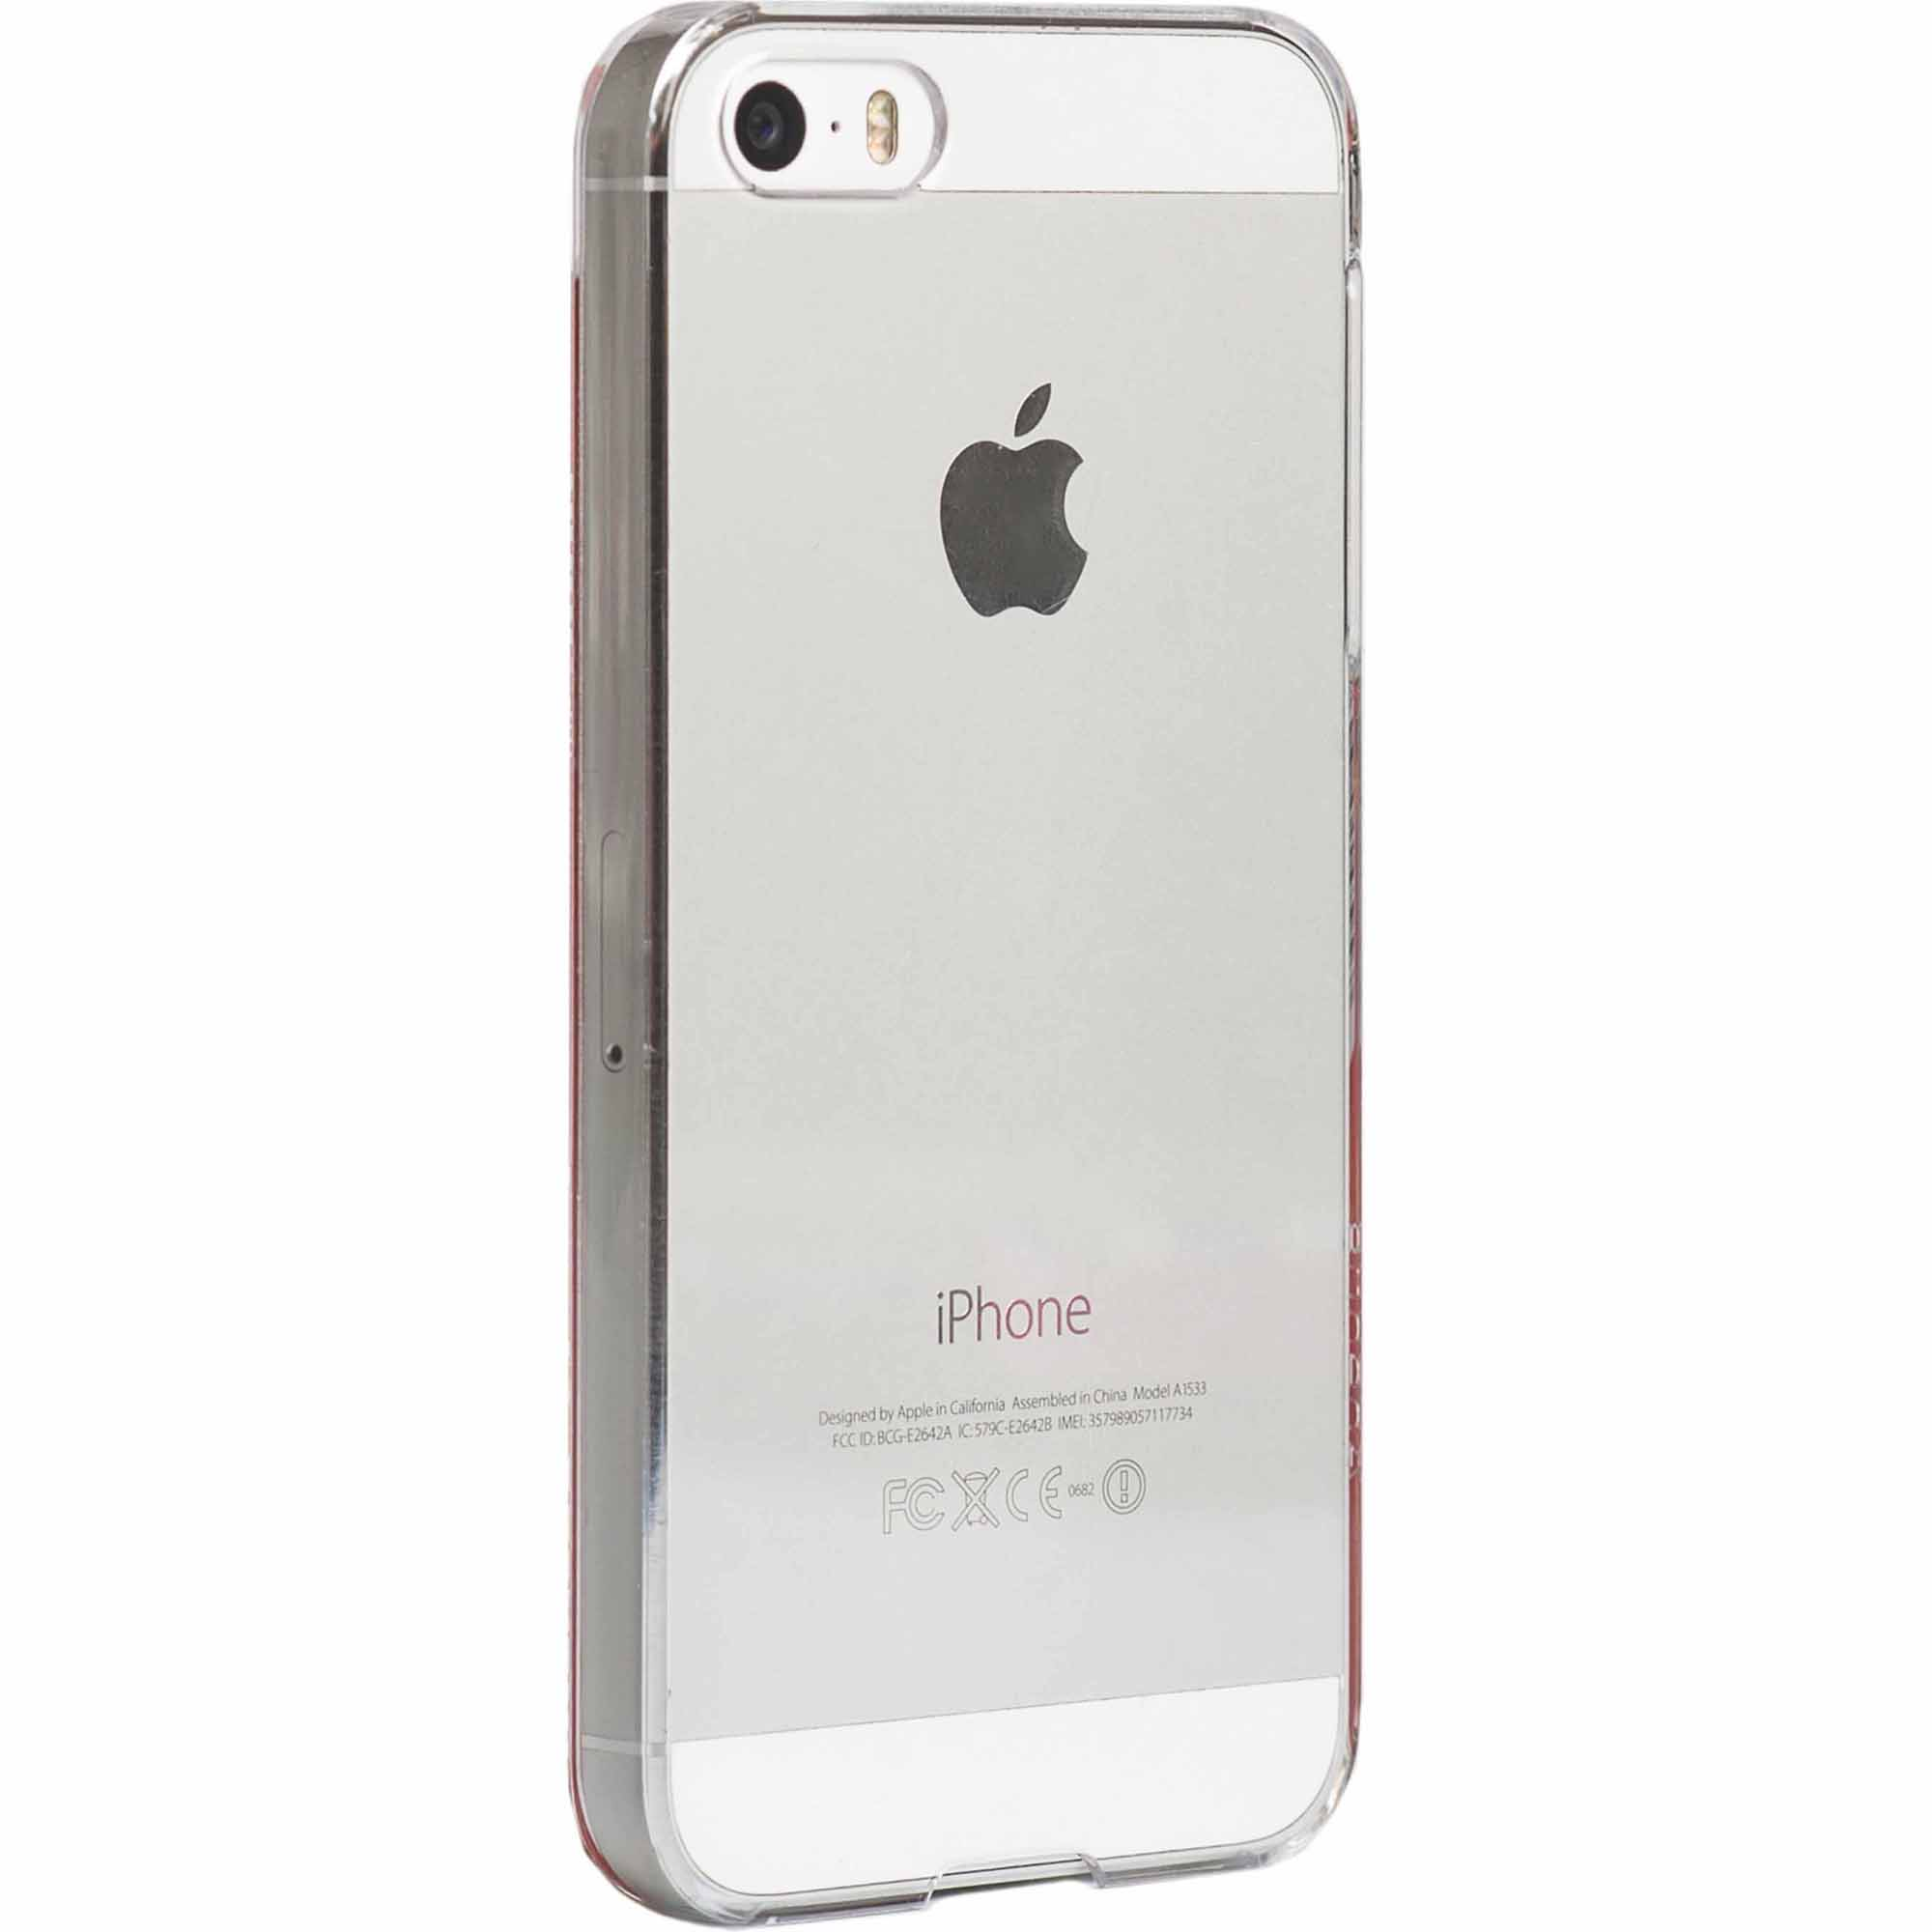 Agent 18 ClearShield Case for Apple iPhone 5/5S - Clear